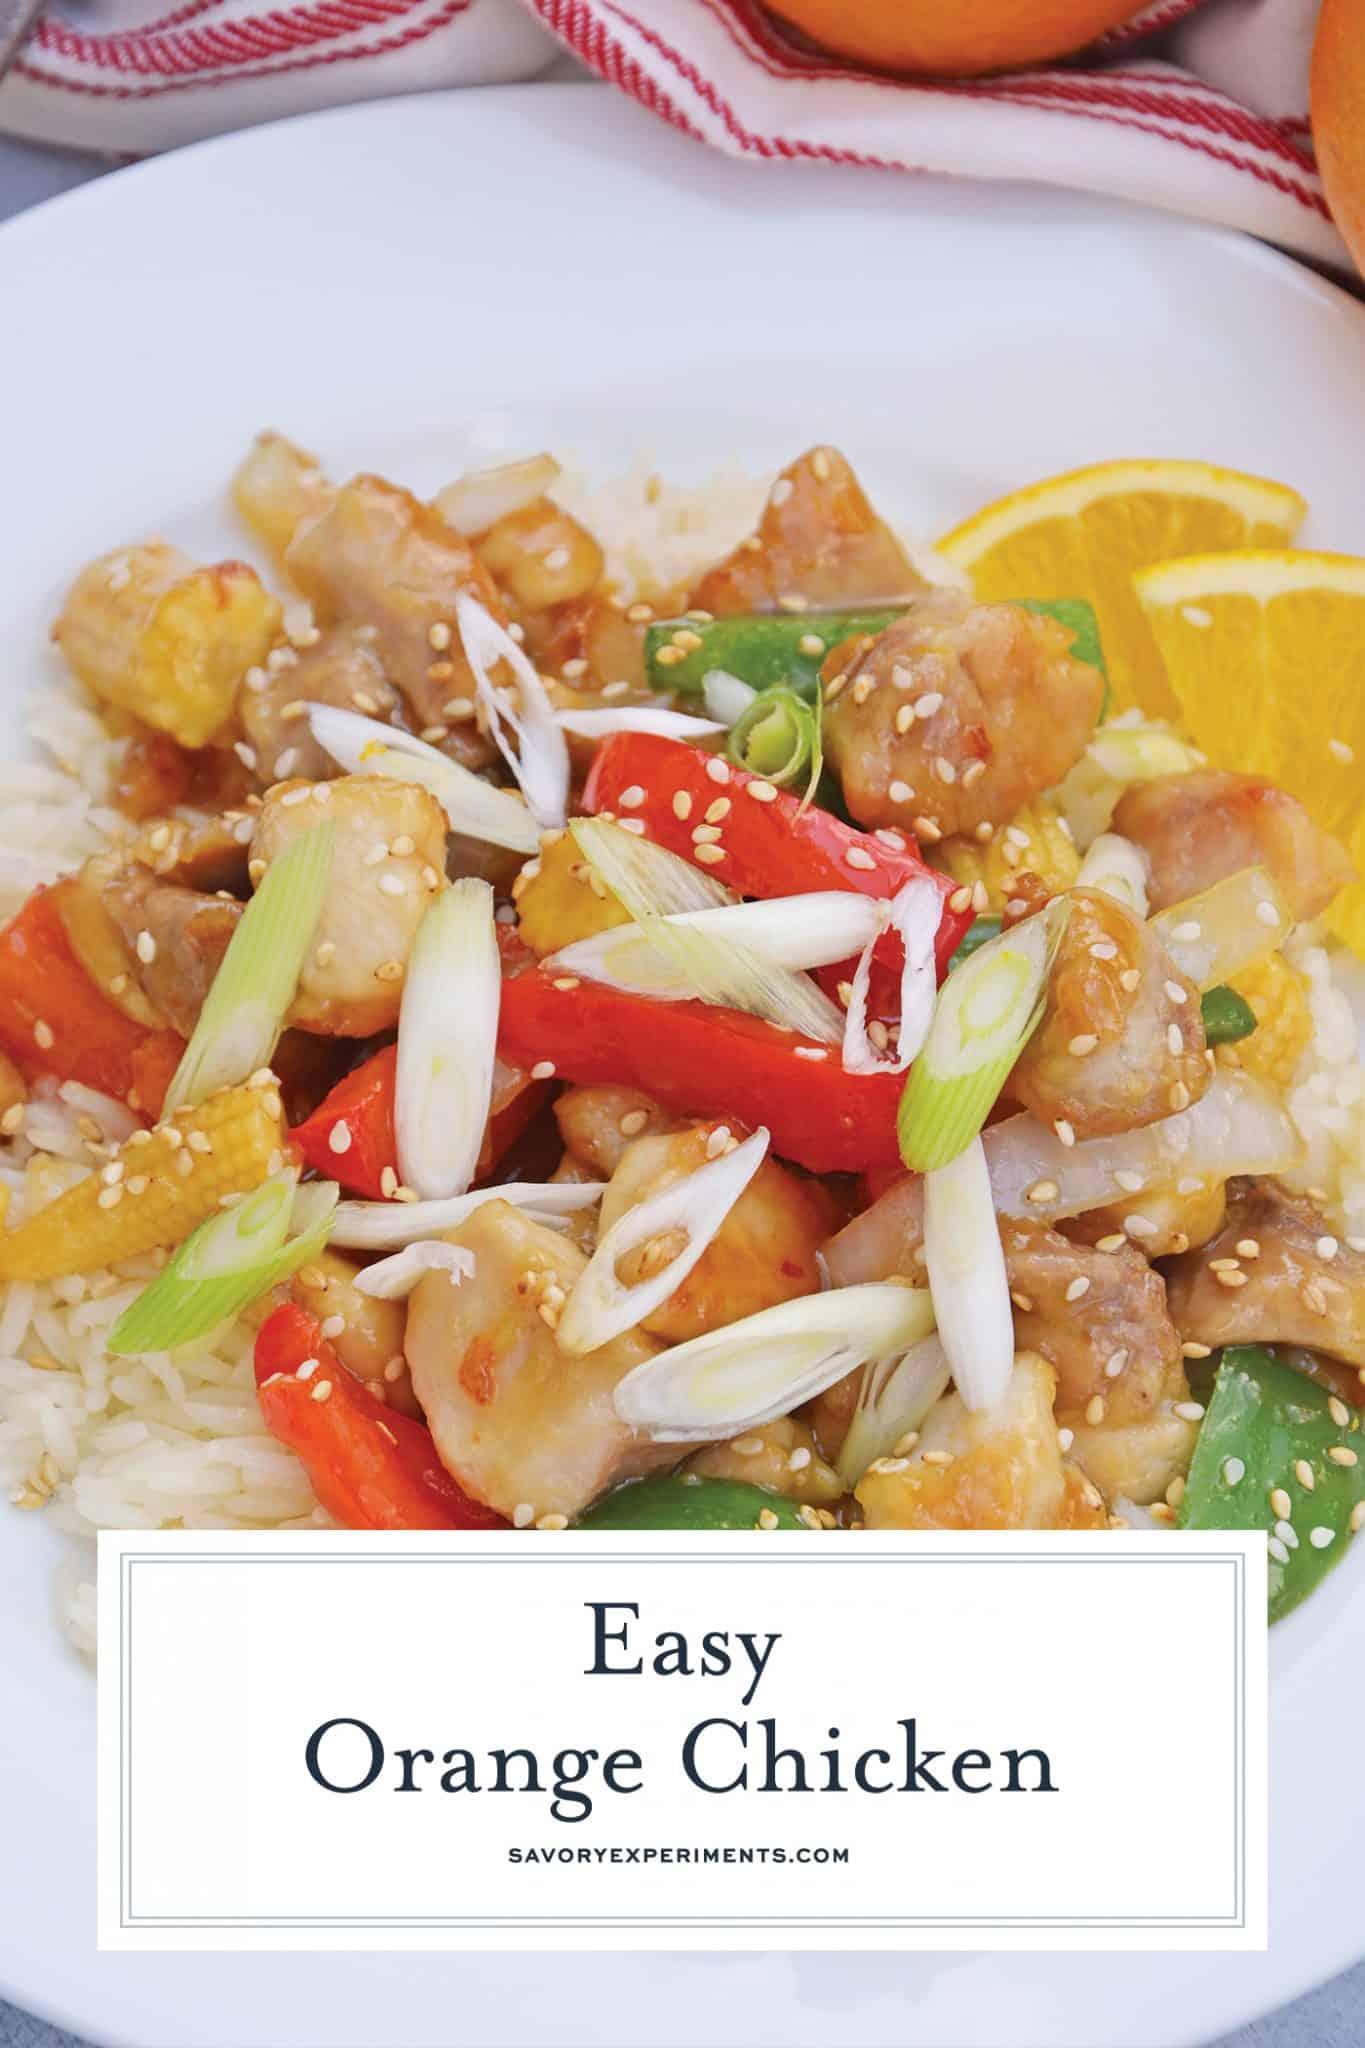 This Orange Chicken Recipe is amped up with bell pepper, baby corn and carrots in a delicious savory orange sauce over rice. Garnish with scallions sesame seeds and orange zest for the best homemade Chinese food.#homemadeorangechicken #orangechickenrecipe www.savoryexperiments.com